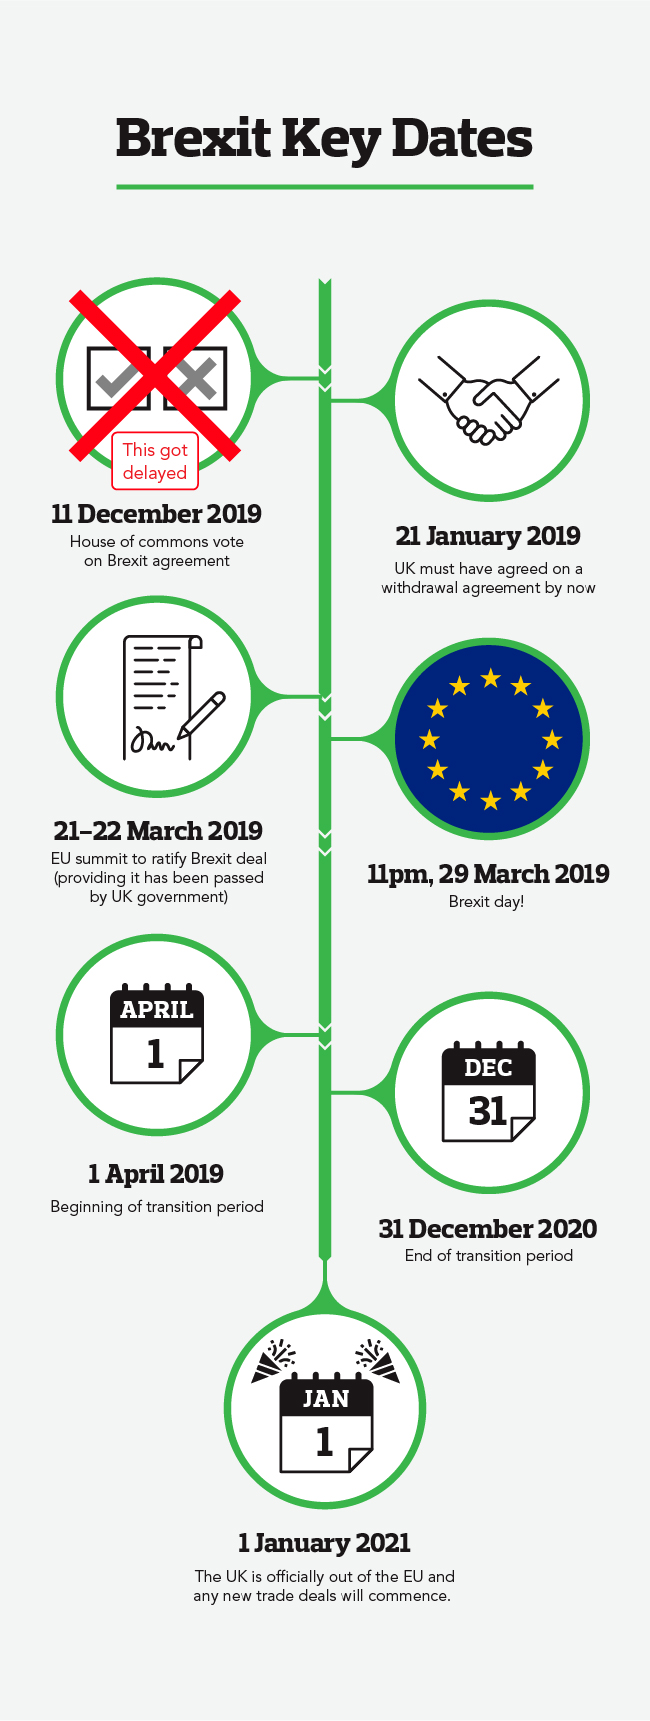 Brexit key dates